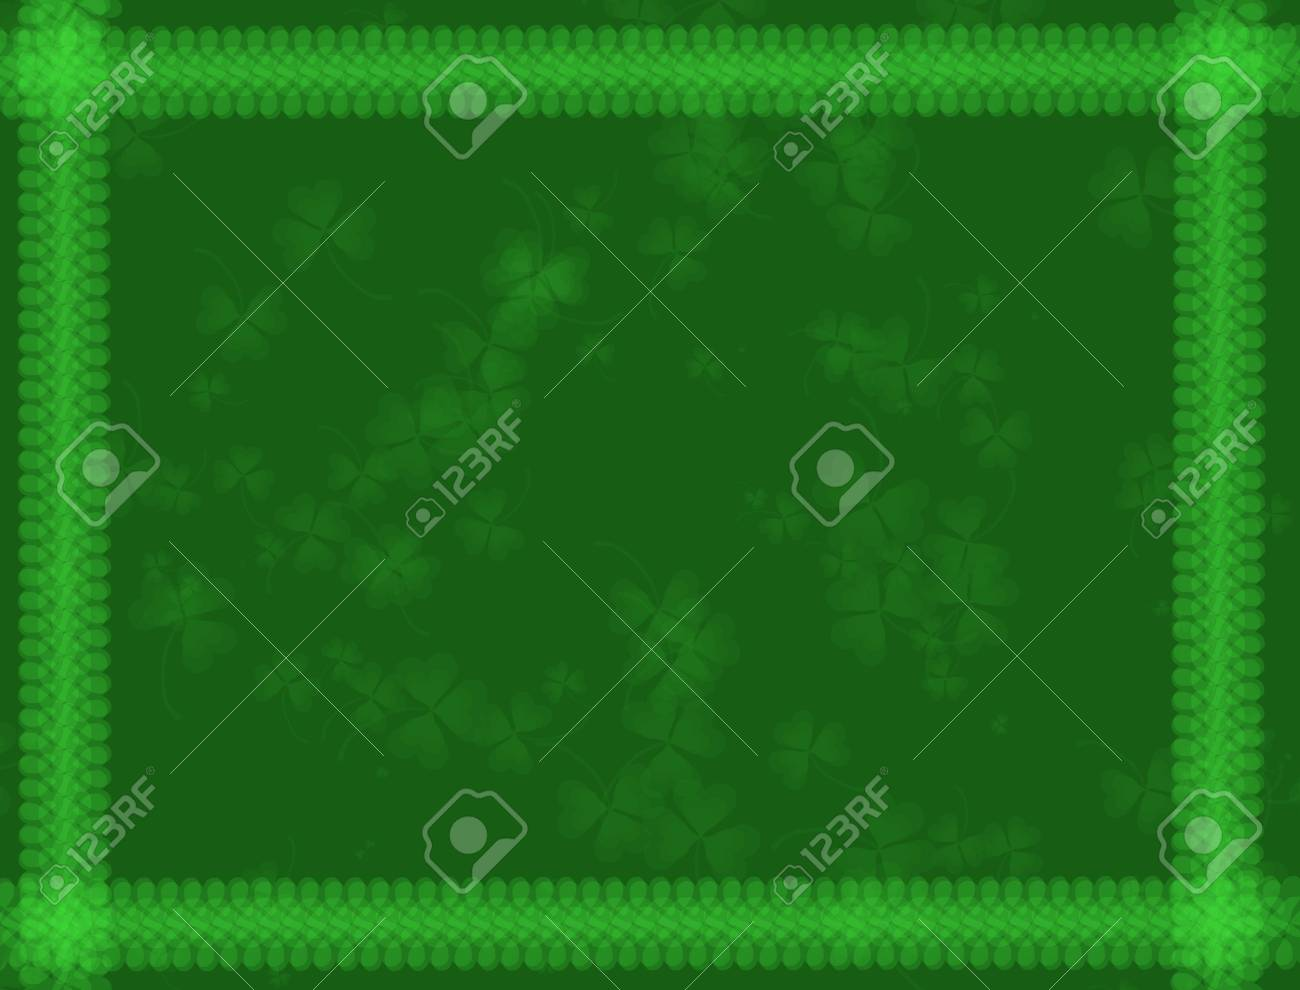 St. Patrick's Day Background -green tones, with shamrock pattern, suitable for a variety of holiday designs Stock Photo - 2639867